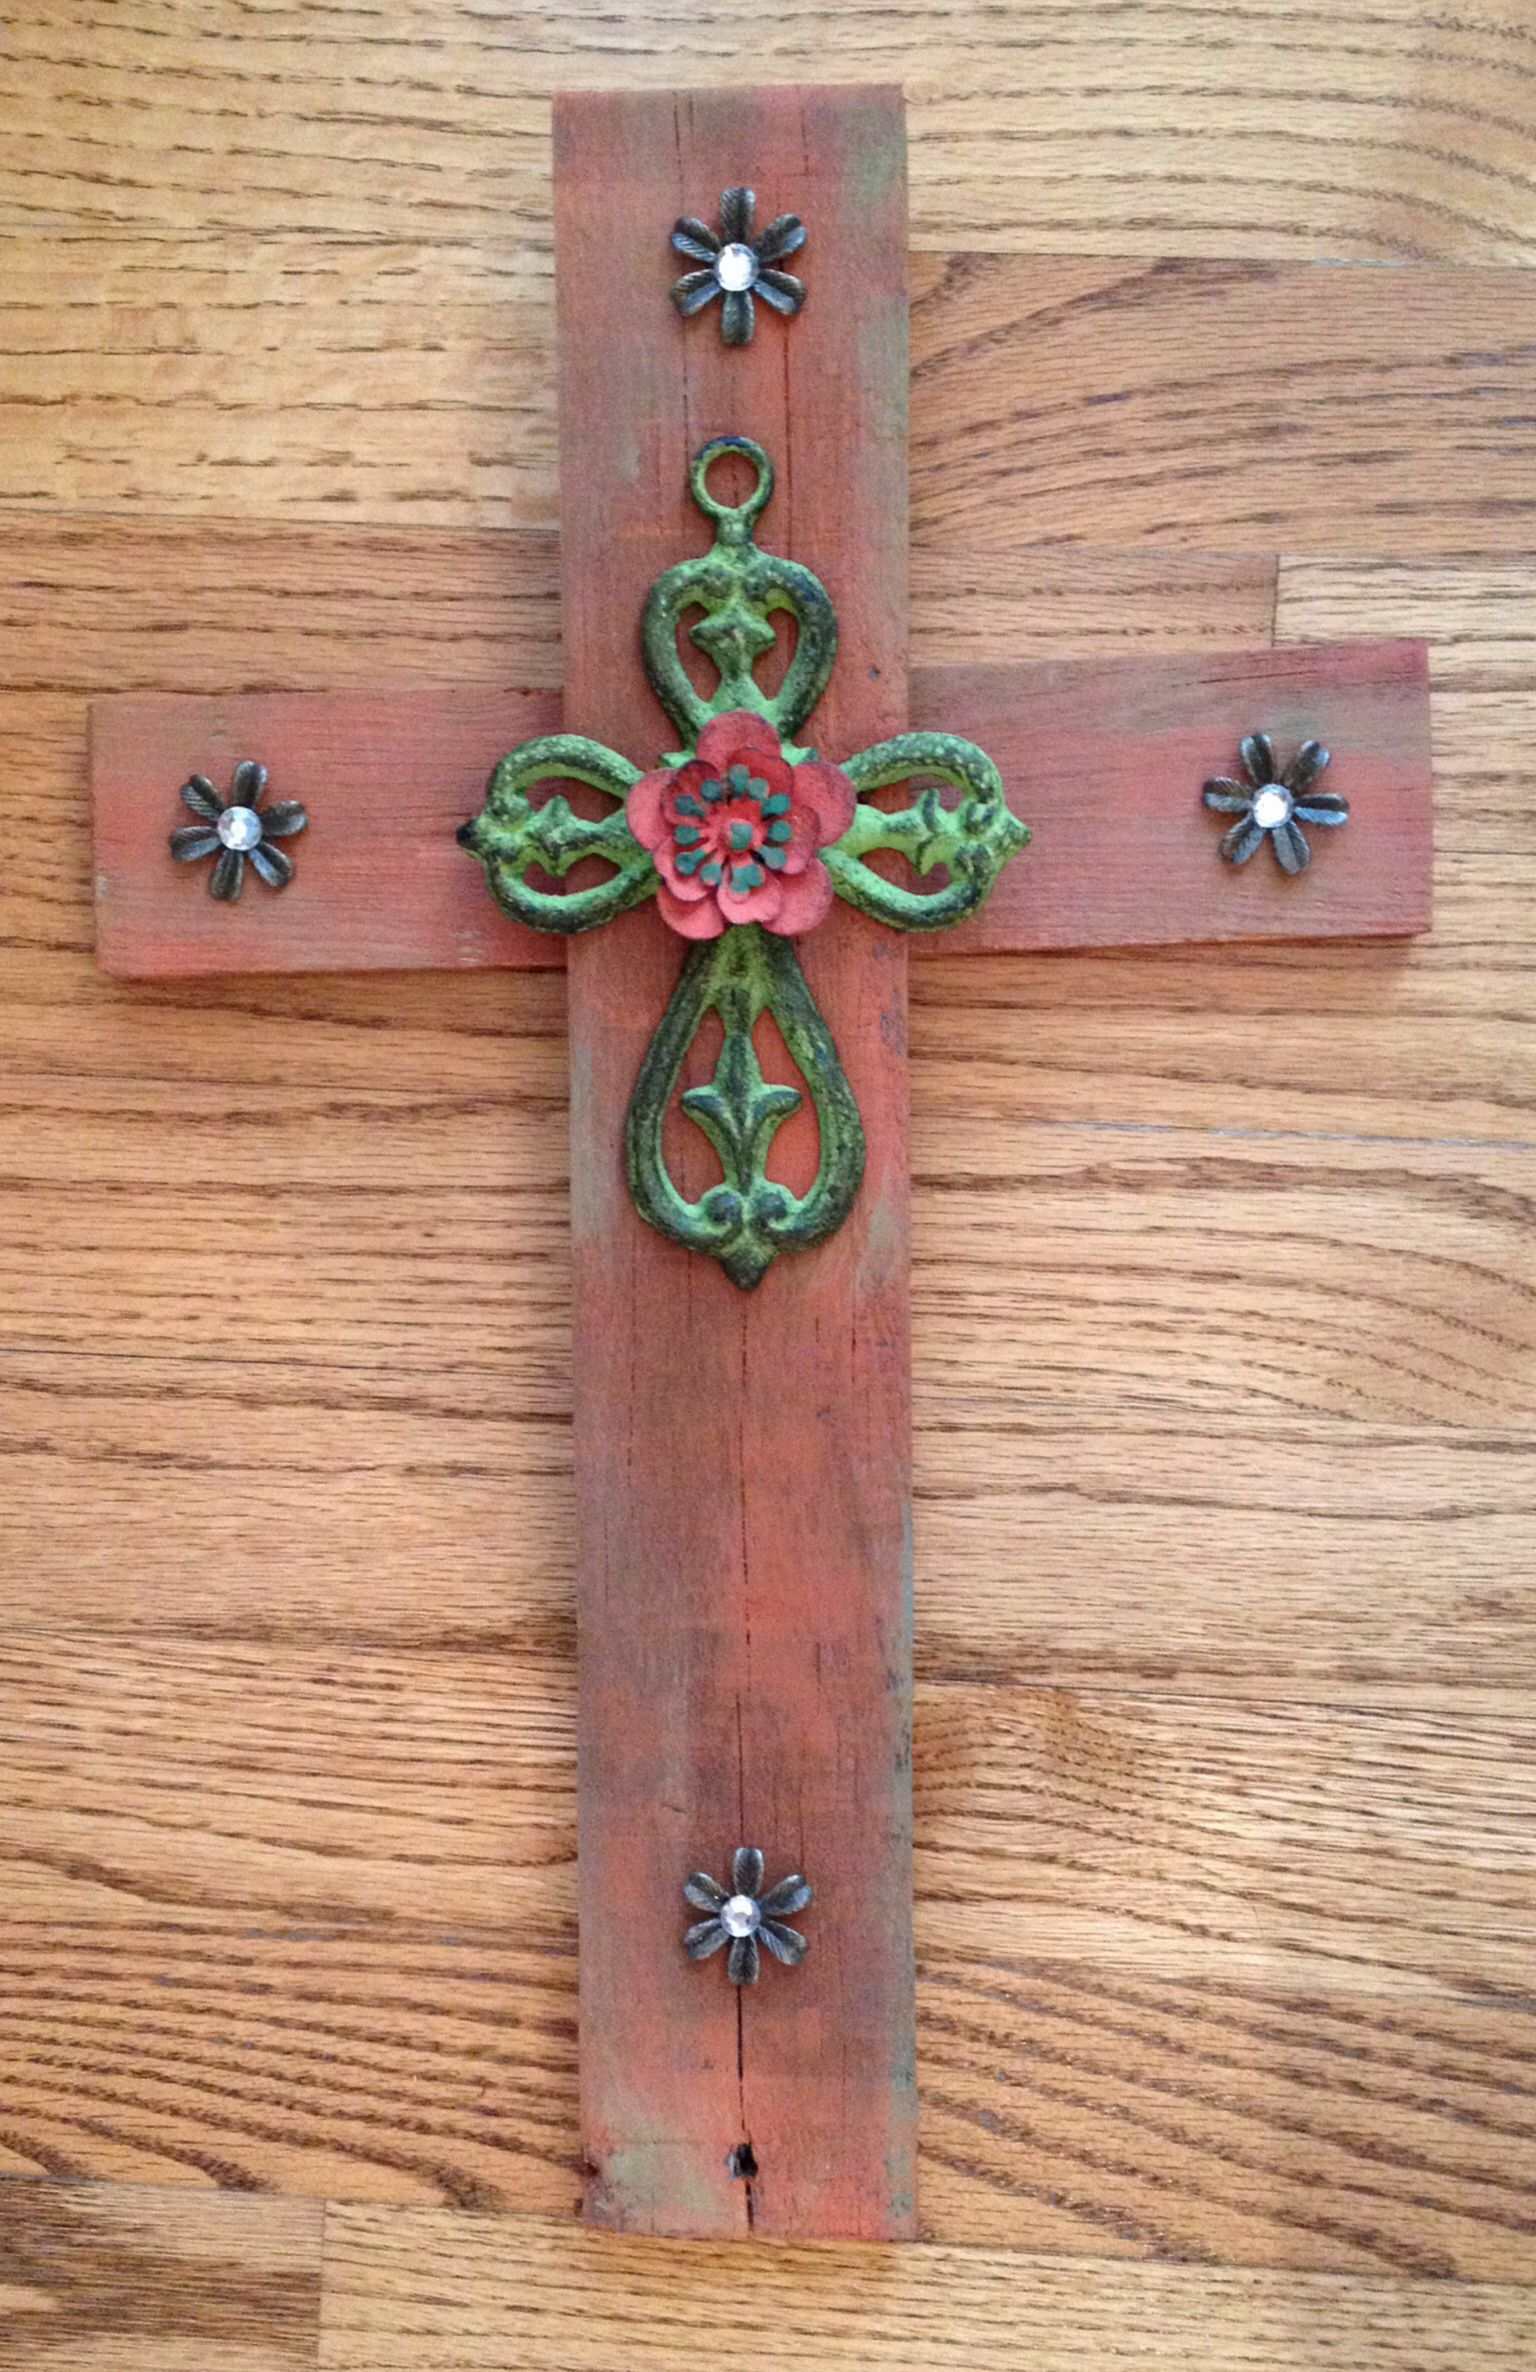 Rust w: green cross rust flower. 16x10.5. $25